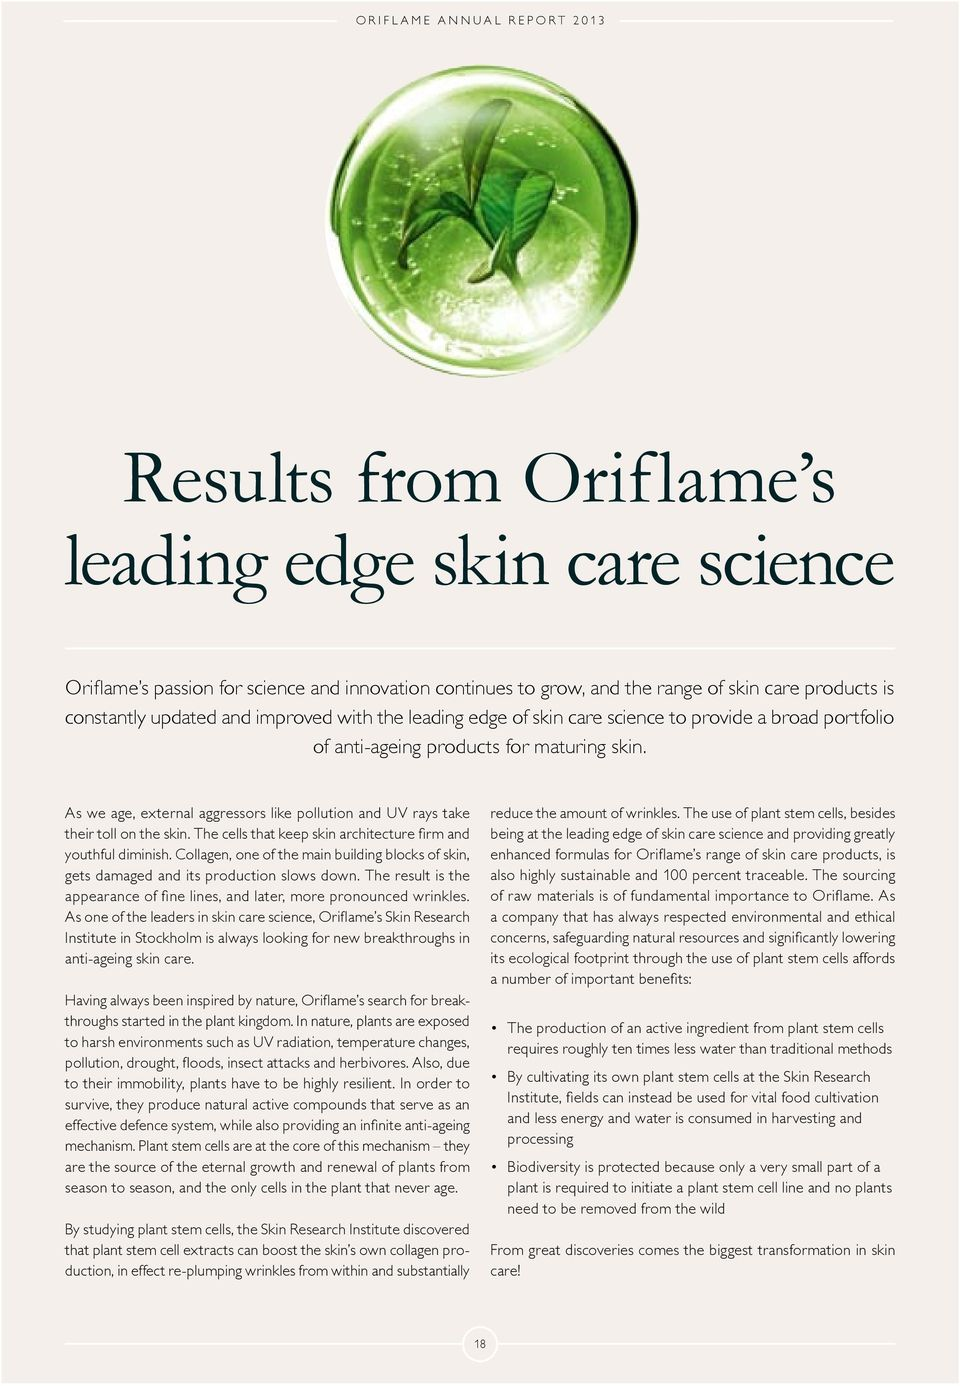 take anti-ageing skin care.